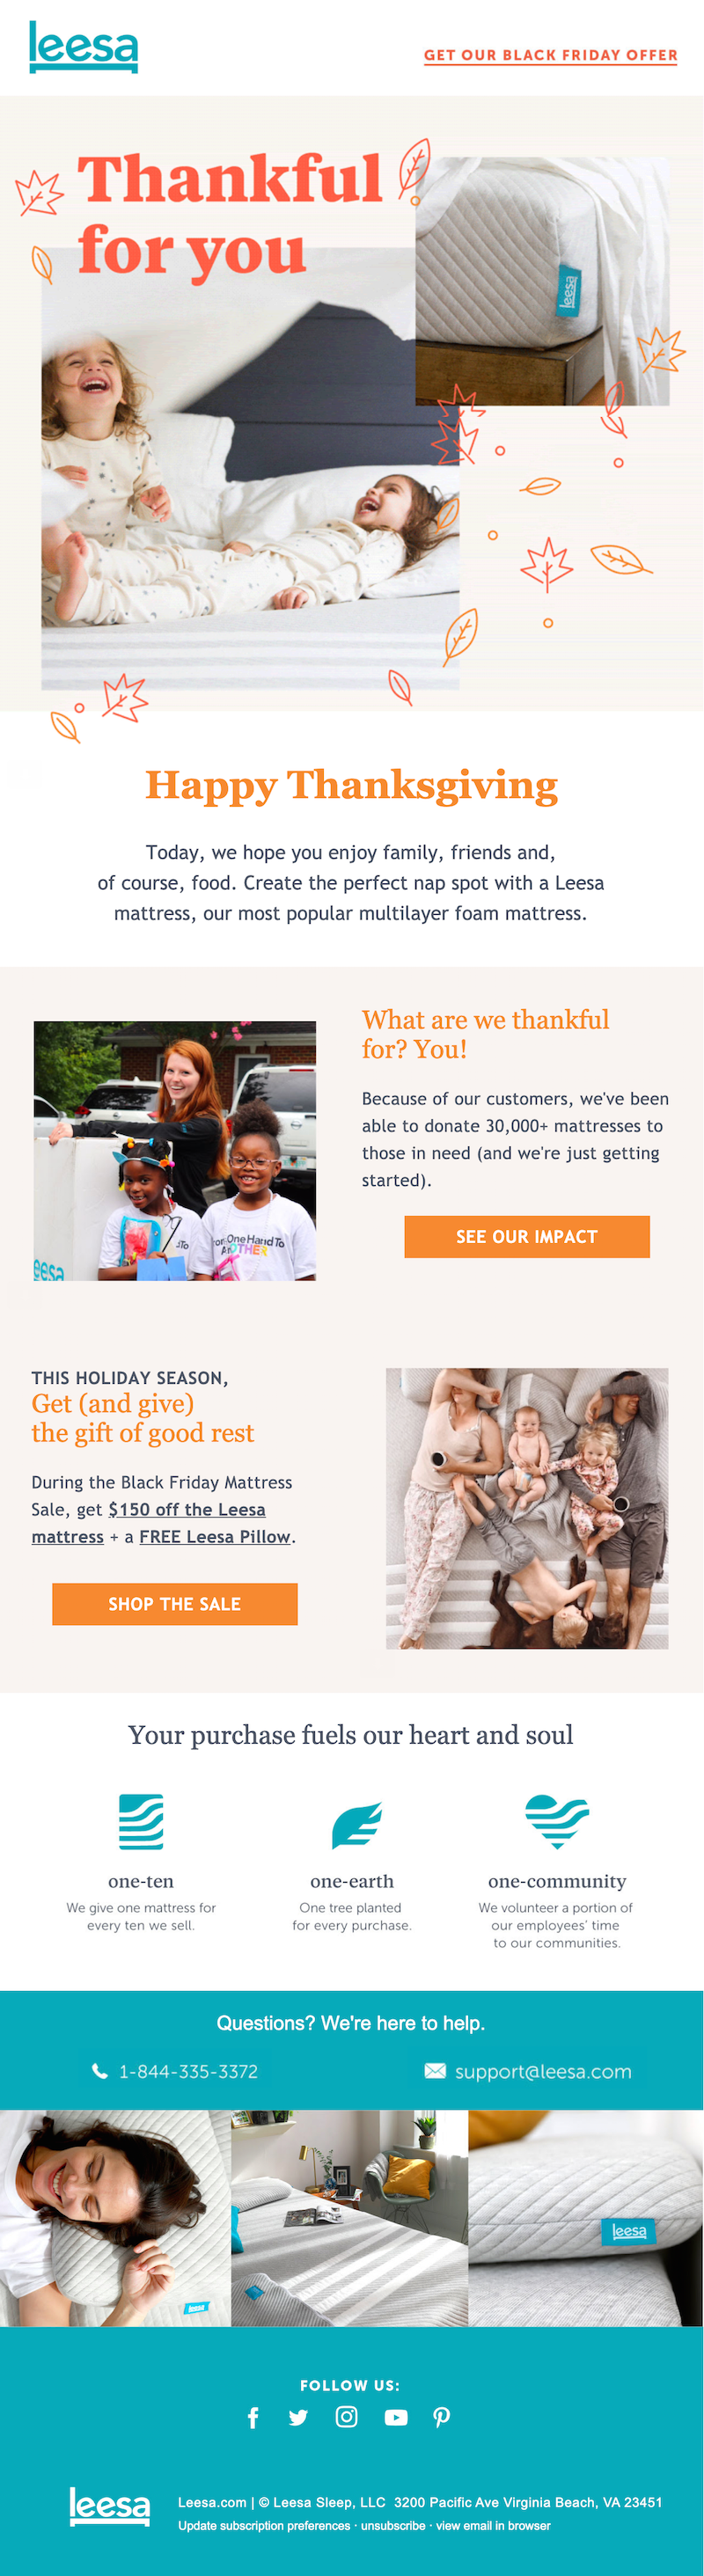 thanksgiving email marketing campaign